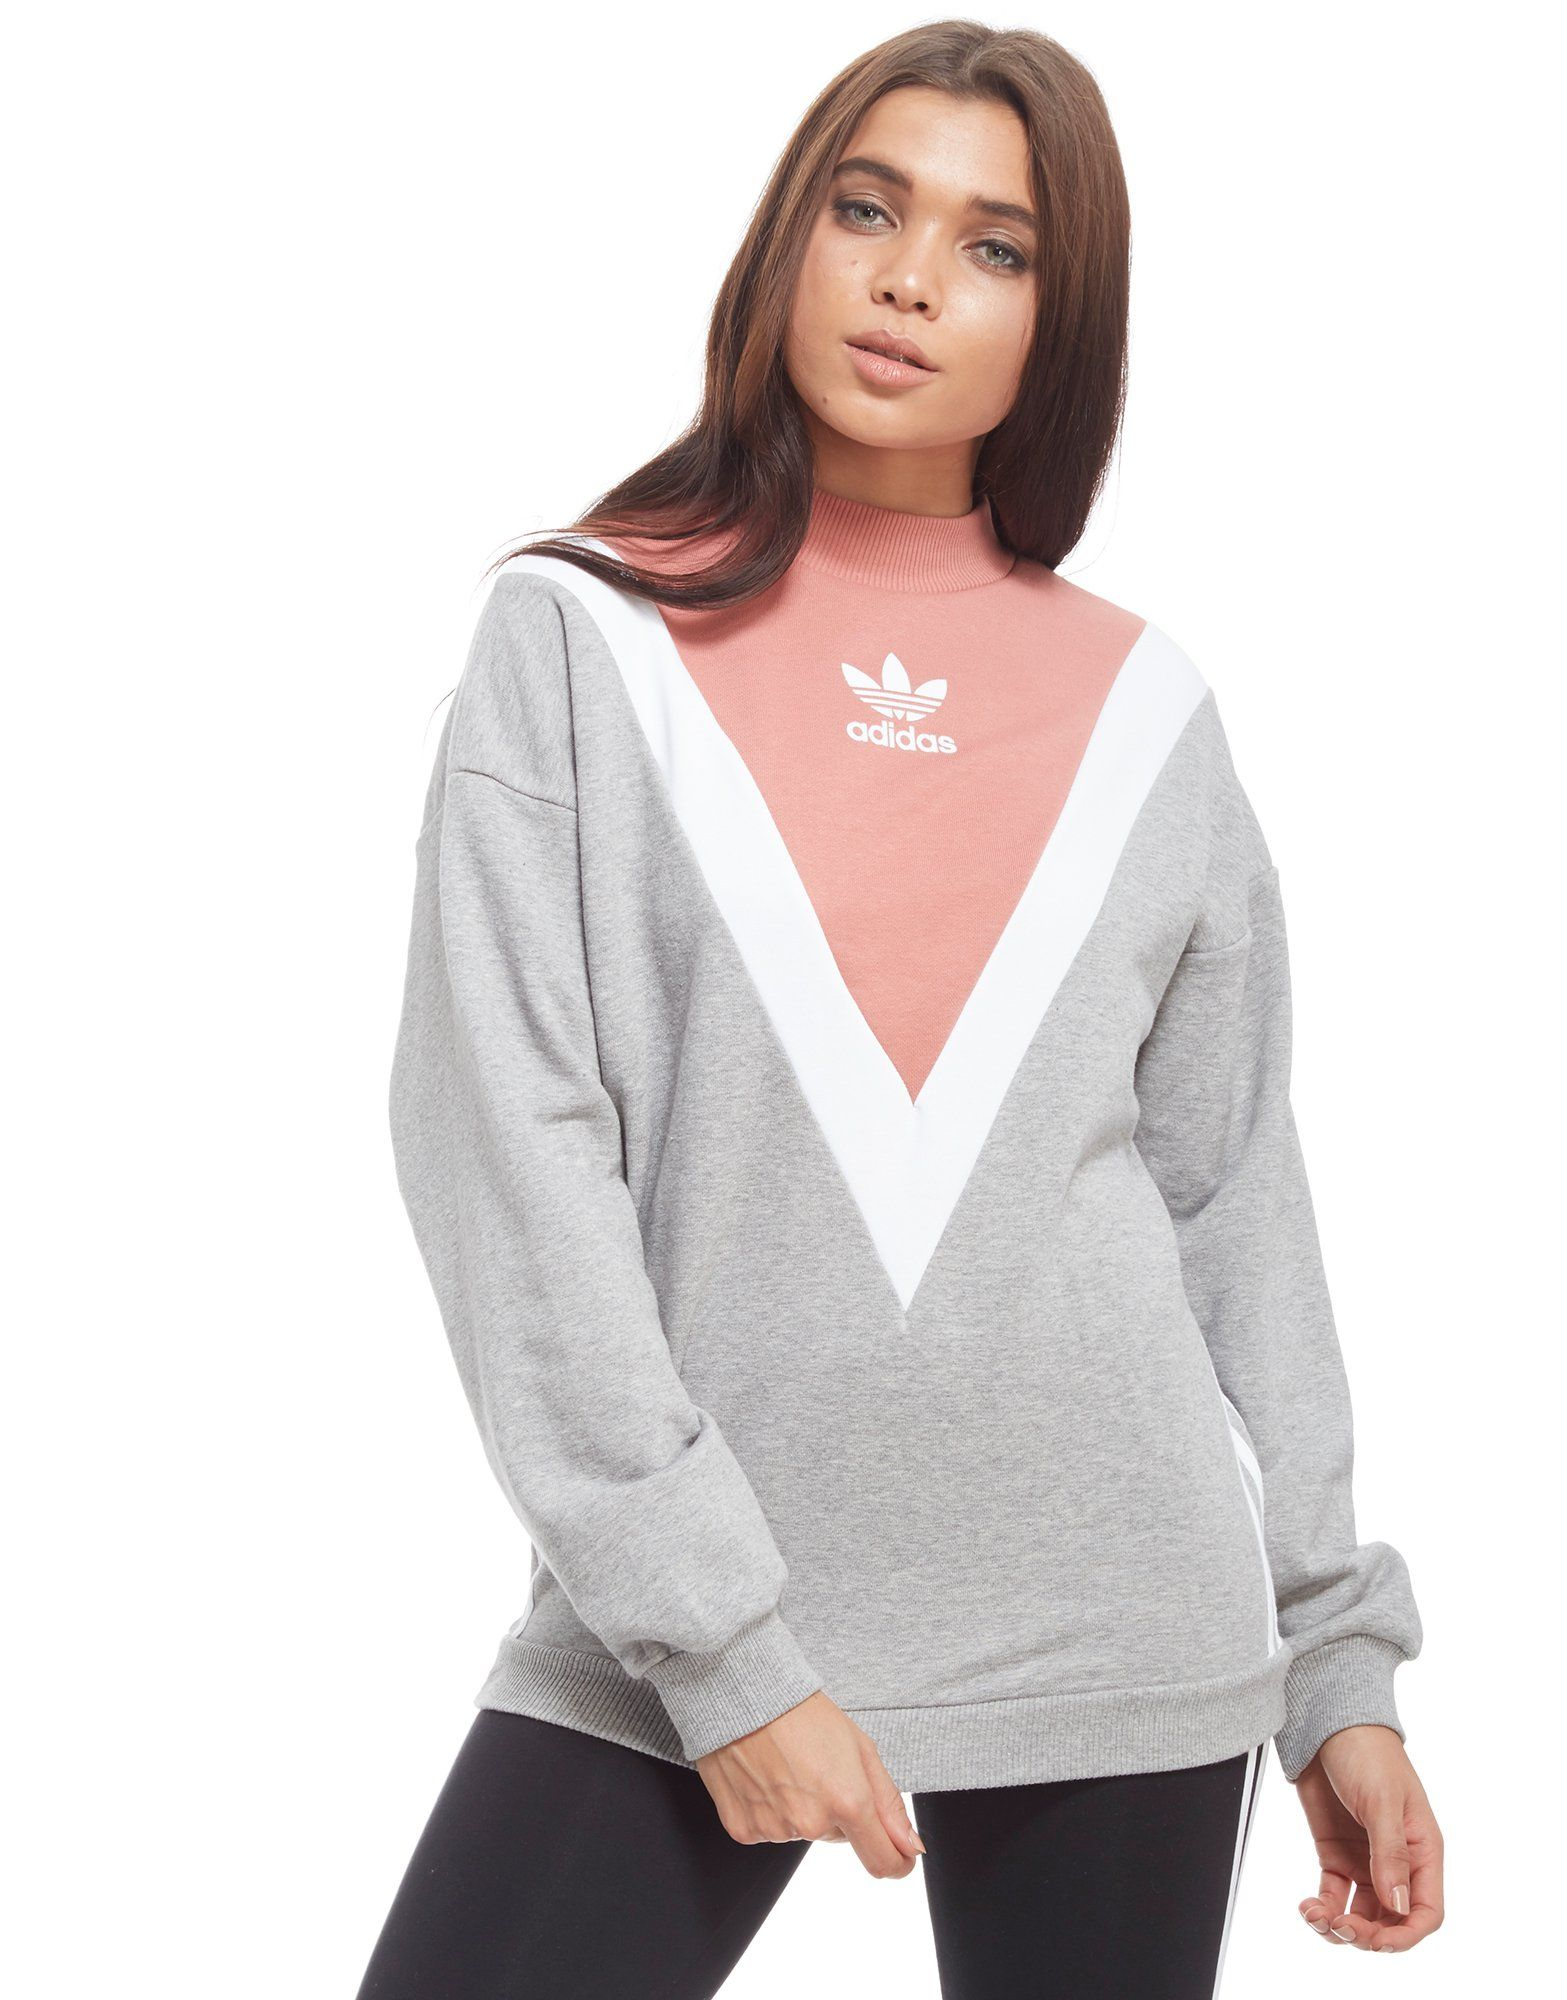 adidas originals chevron sweatshirt jd sports. Black Bedroom Furniture Sets. Home Design Ideas